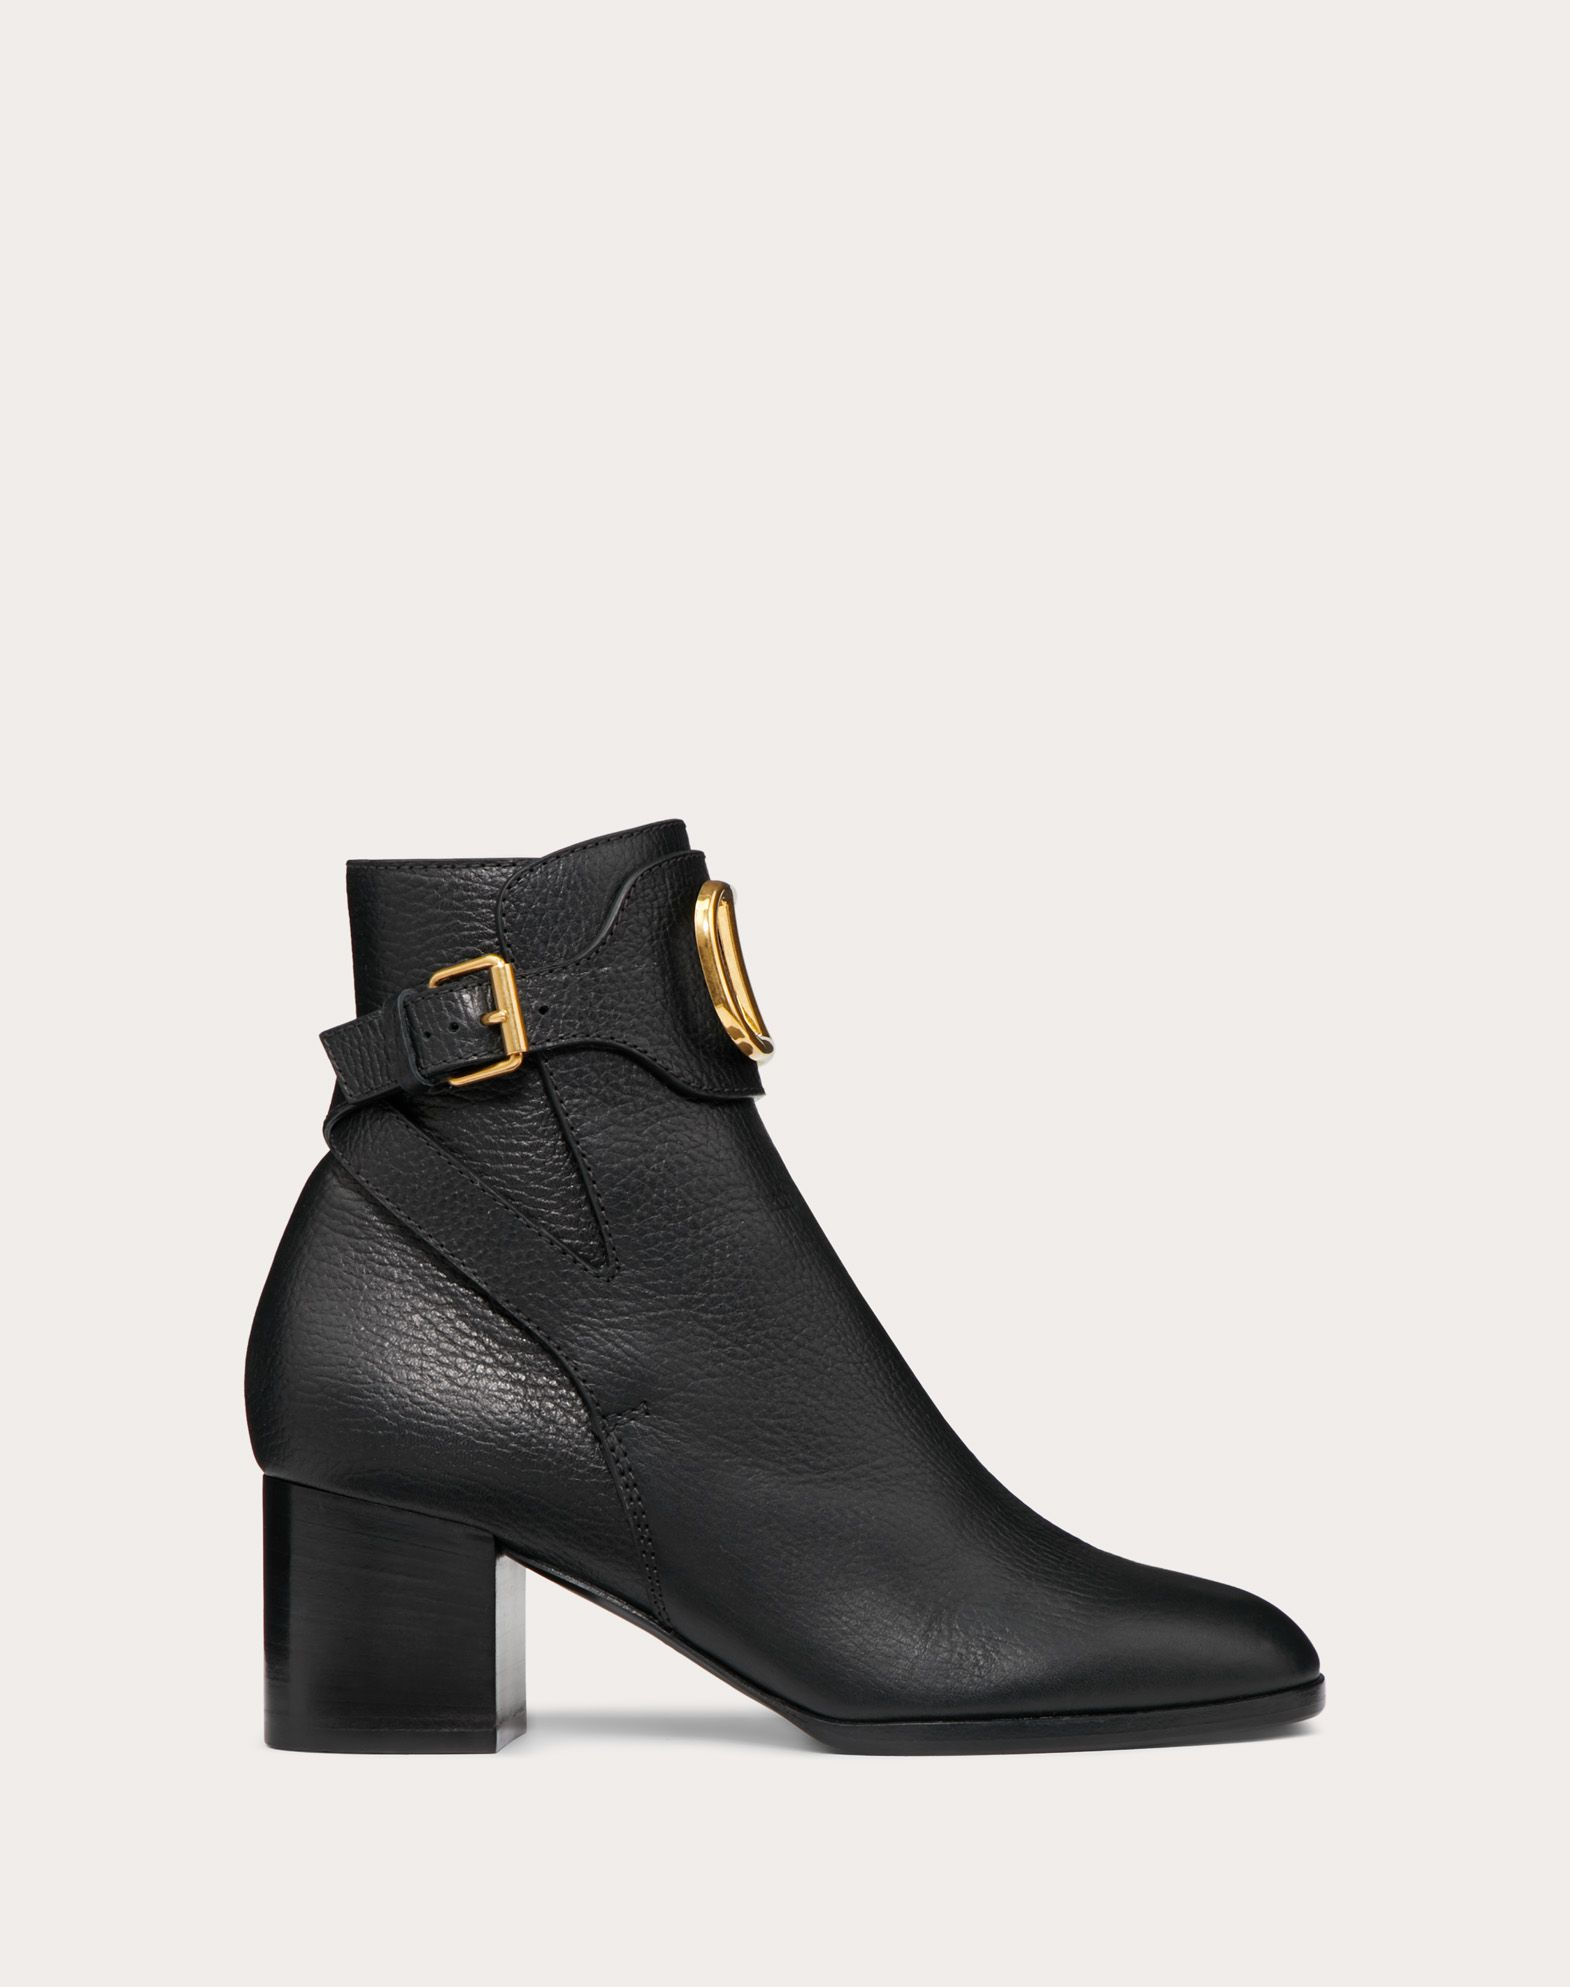 VLOGO Grainy Leather Ankle Boot 60 mm for Woman | Valentino Online Boutique